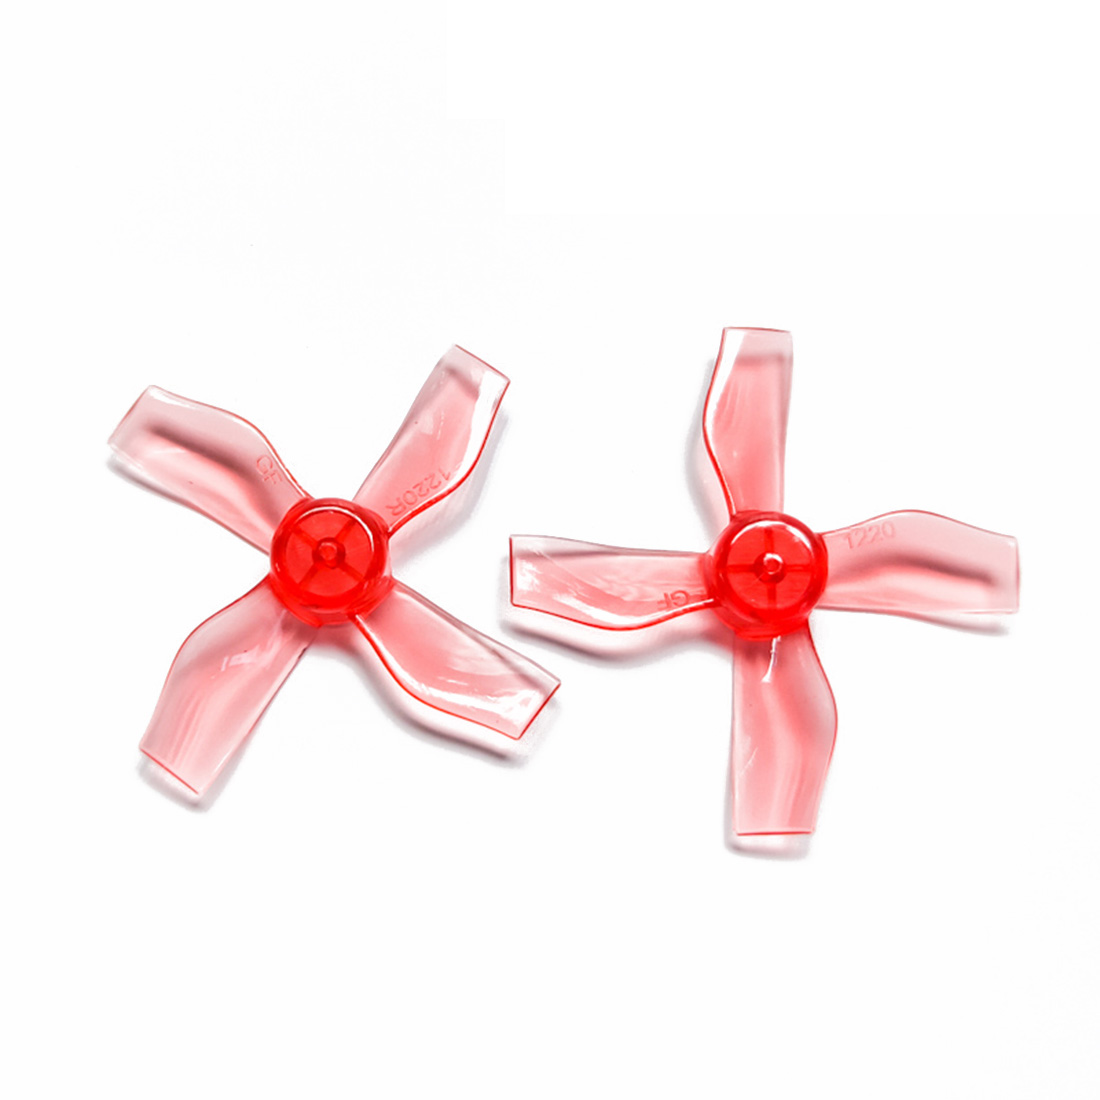 Gemfan 4 Pair <font><b>1220</b></font> 1.2x2x4 31mm 0.8mm Hole 4 Paddle Propeller for 0703-1103 RC Drone FPV Racing Brushless <font><b>Motor</b></font> Spare Parts Accs image